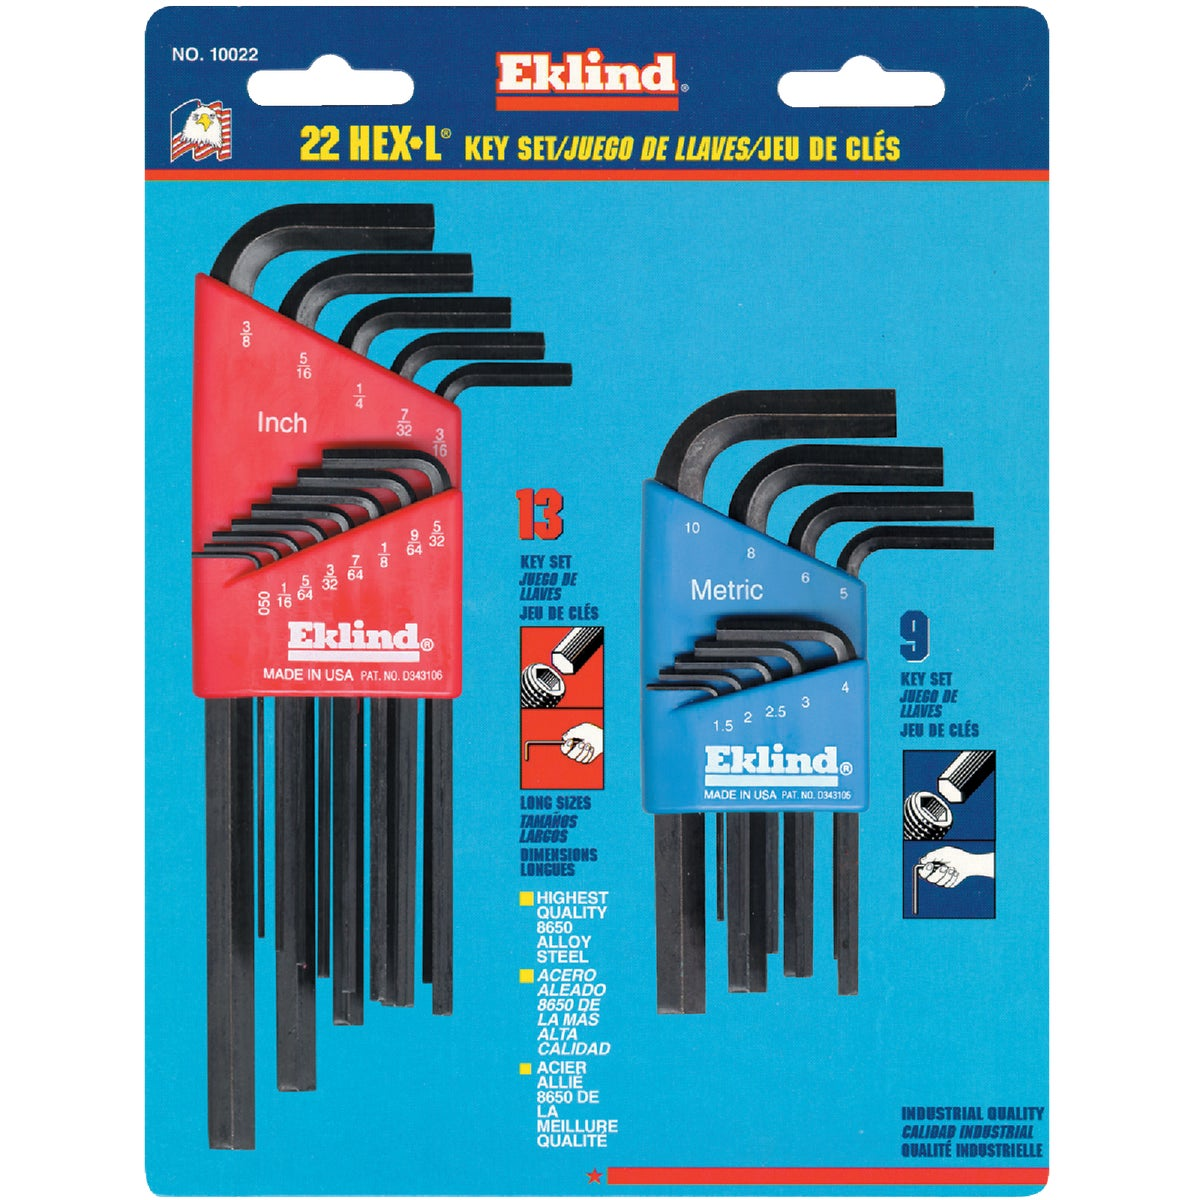 22PC SAE/METRIC HEX KEY - 10022 by Eklind